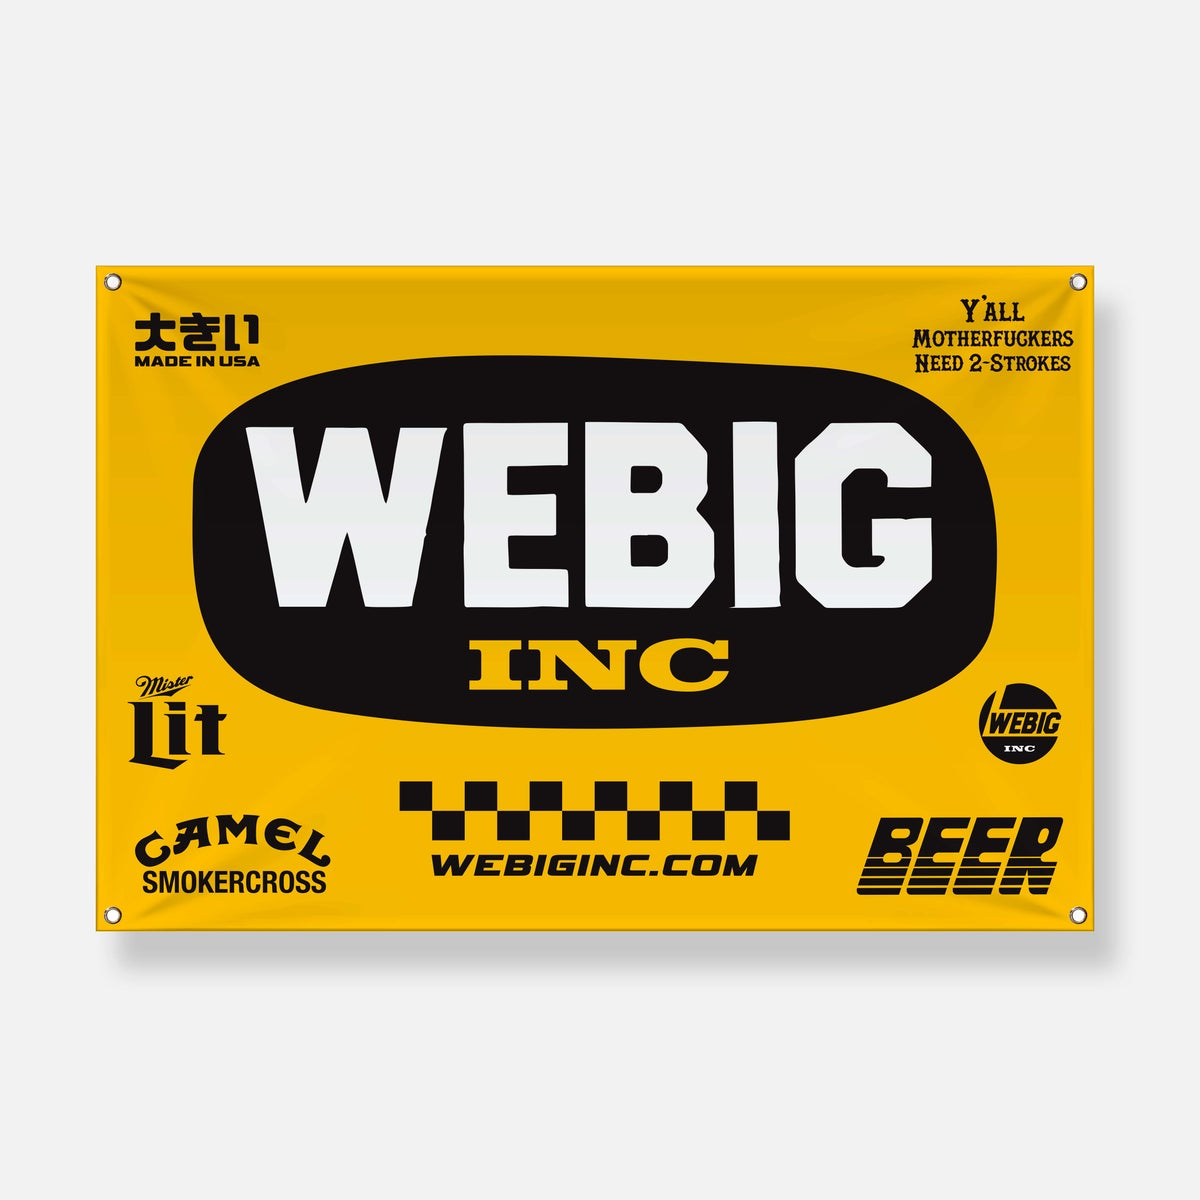 Image of WEBIG SHOP BANNERS COLLECTION 2